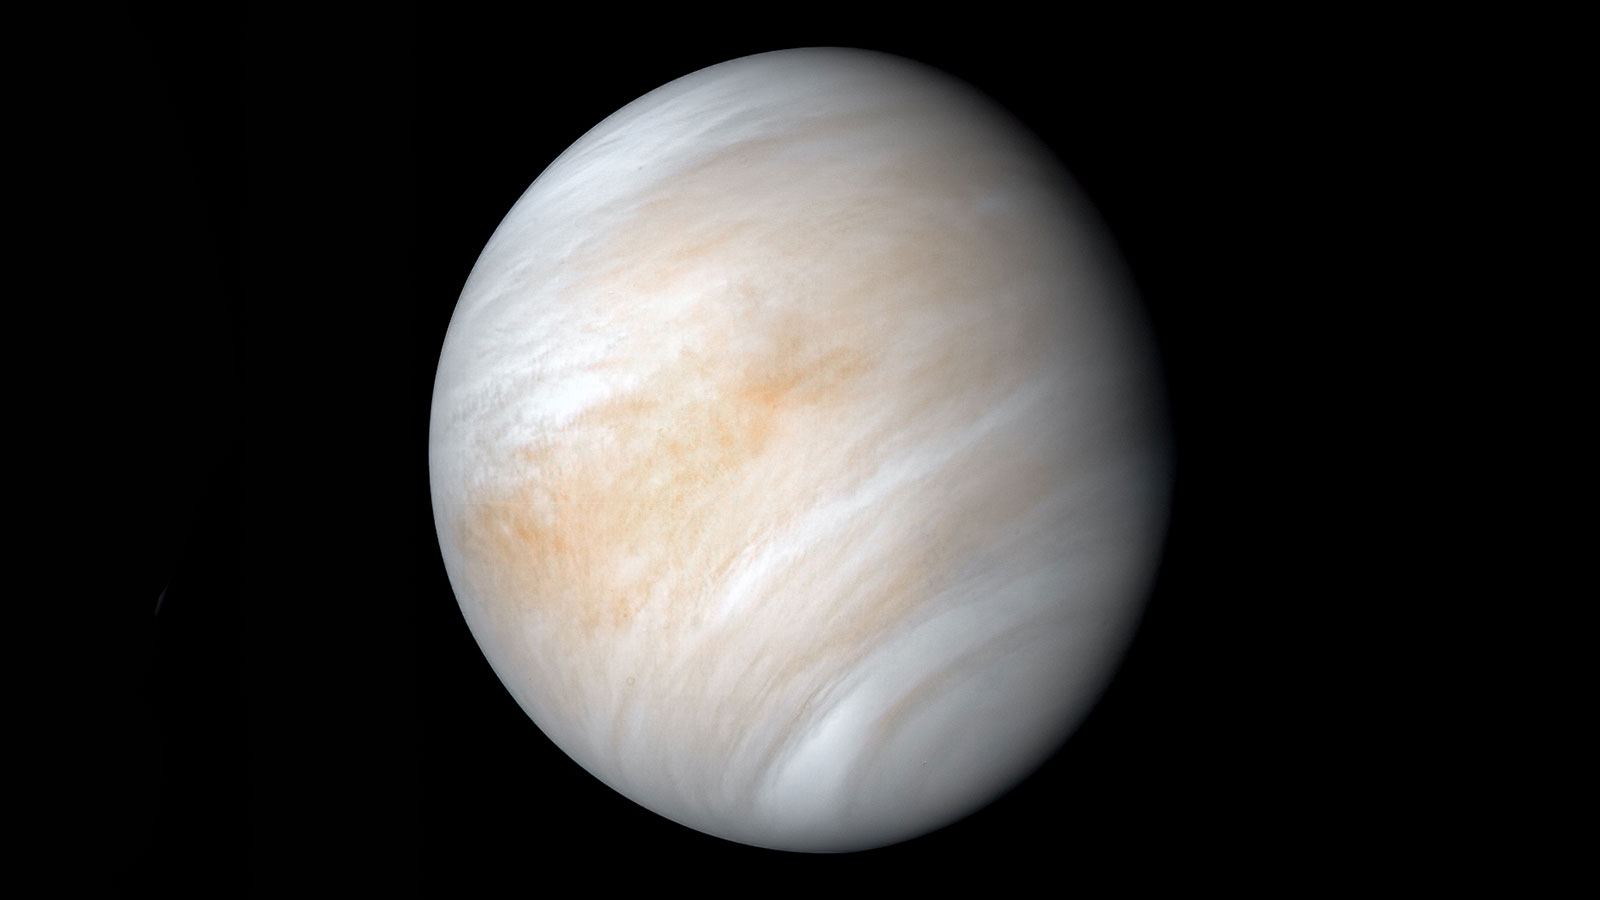 A photo of the planet Venus.